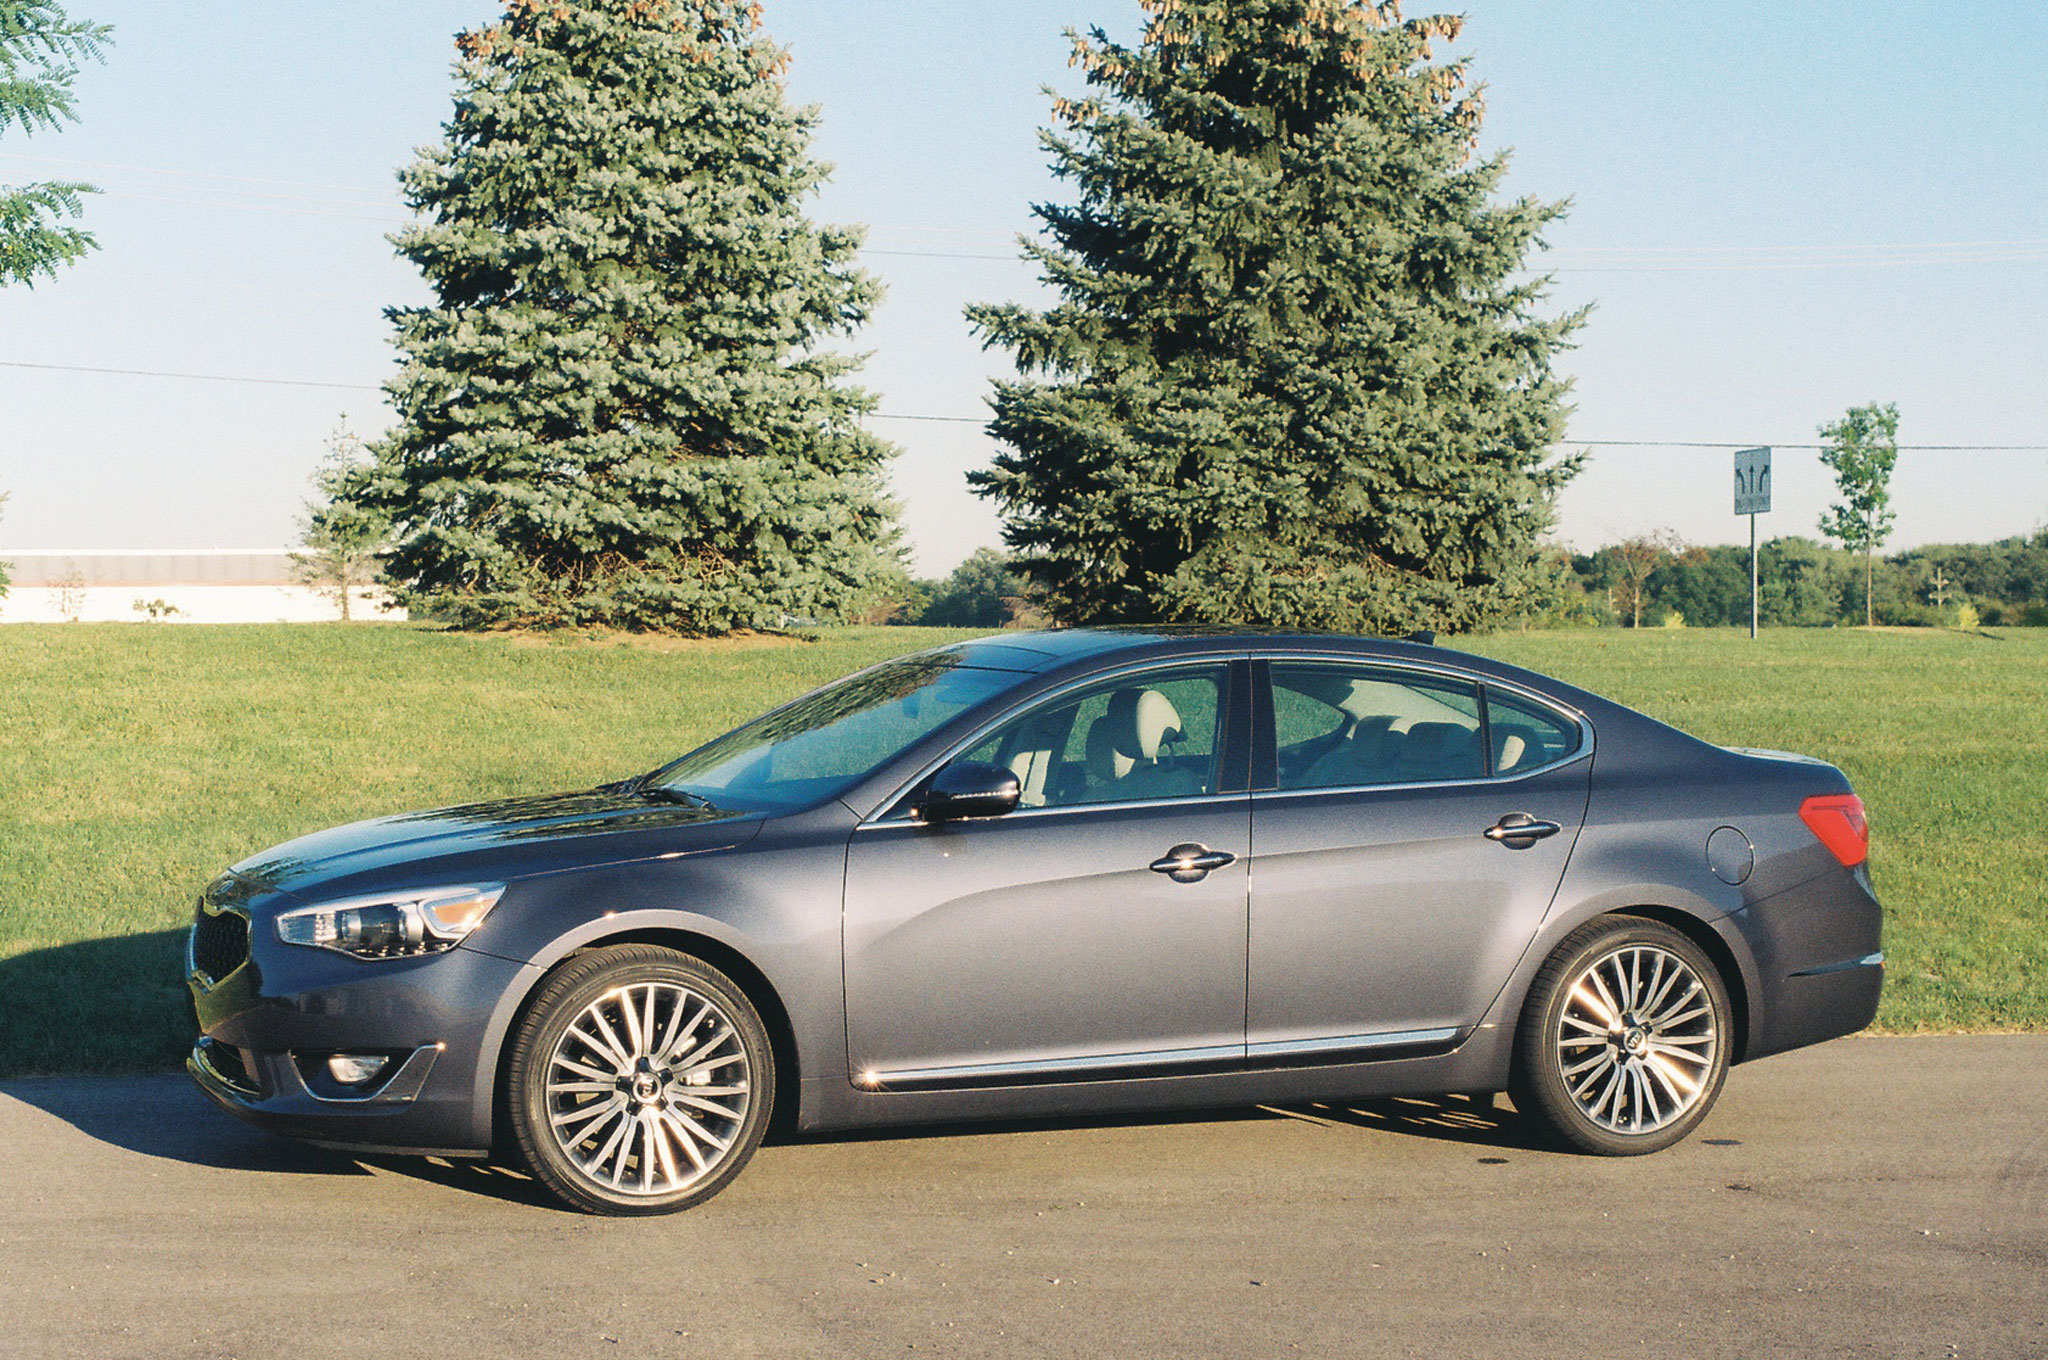 car the day since go cadenza we better satin a metal kia here new i pictures wash to good forum had finally enough